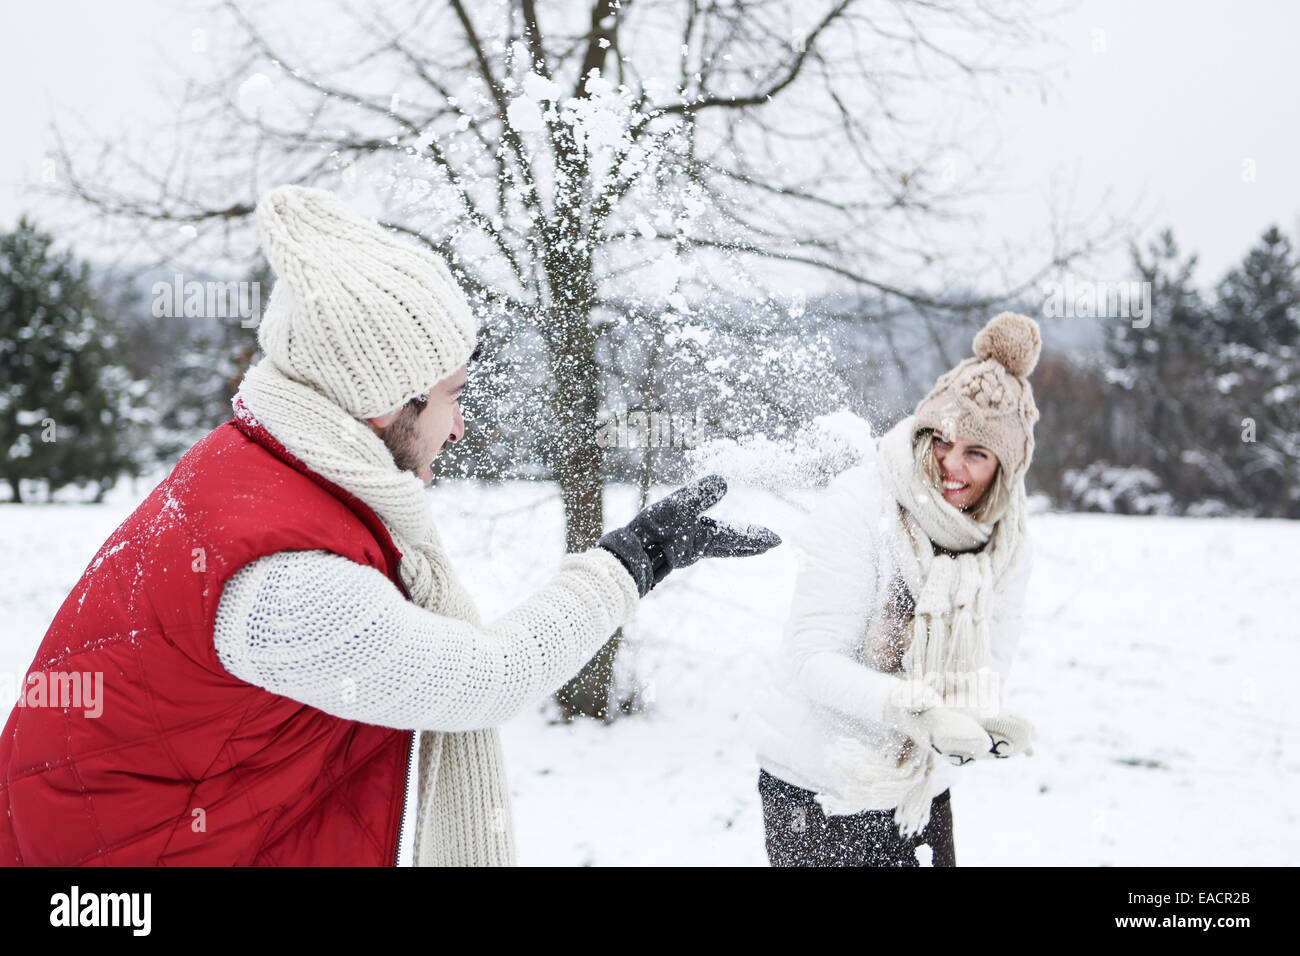 Happy couple doing a snowball fight together in winter - Stock Image